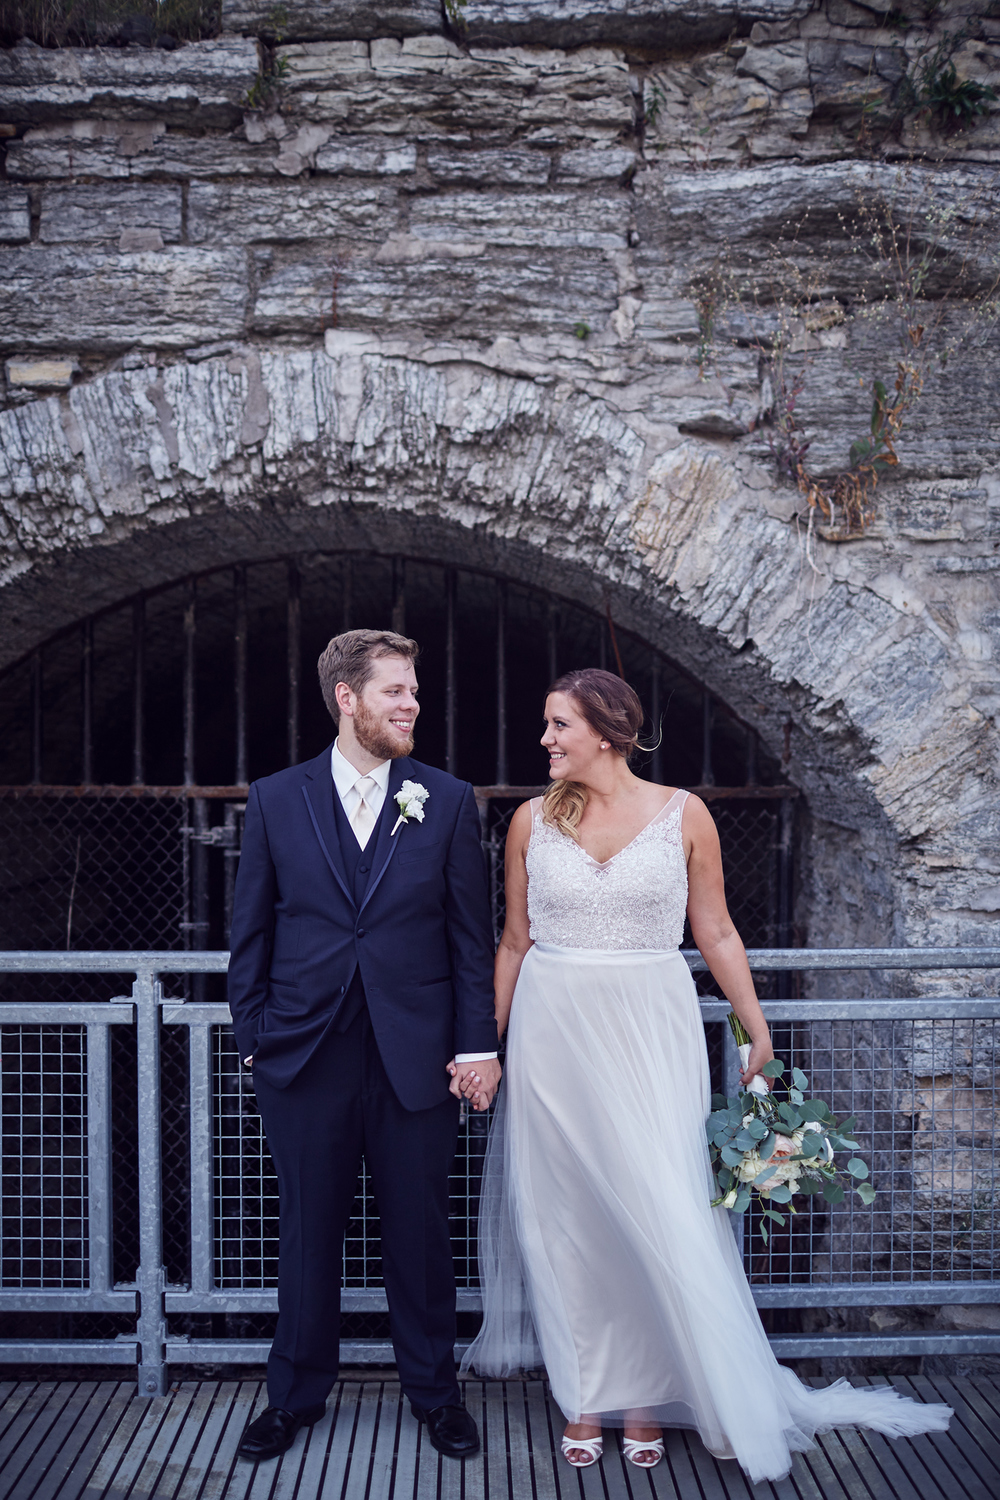 Amy_And_Rob_Minneapolis_Stone_Arch_Wedding_Photography_For_Blog_By_Twin_Cities_Photographer_Joe_Lemke_038.JPG